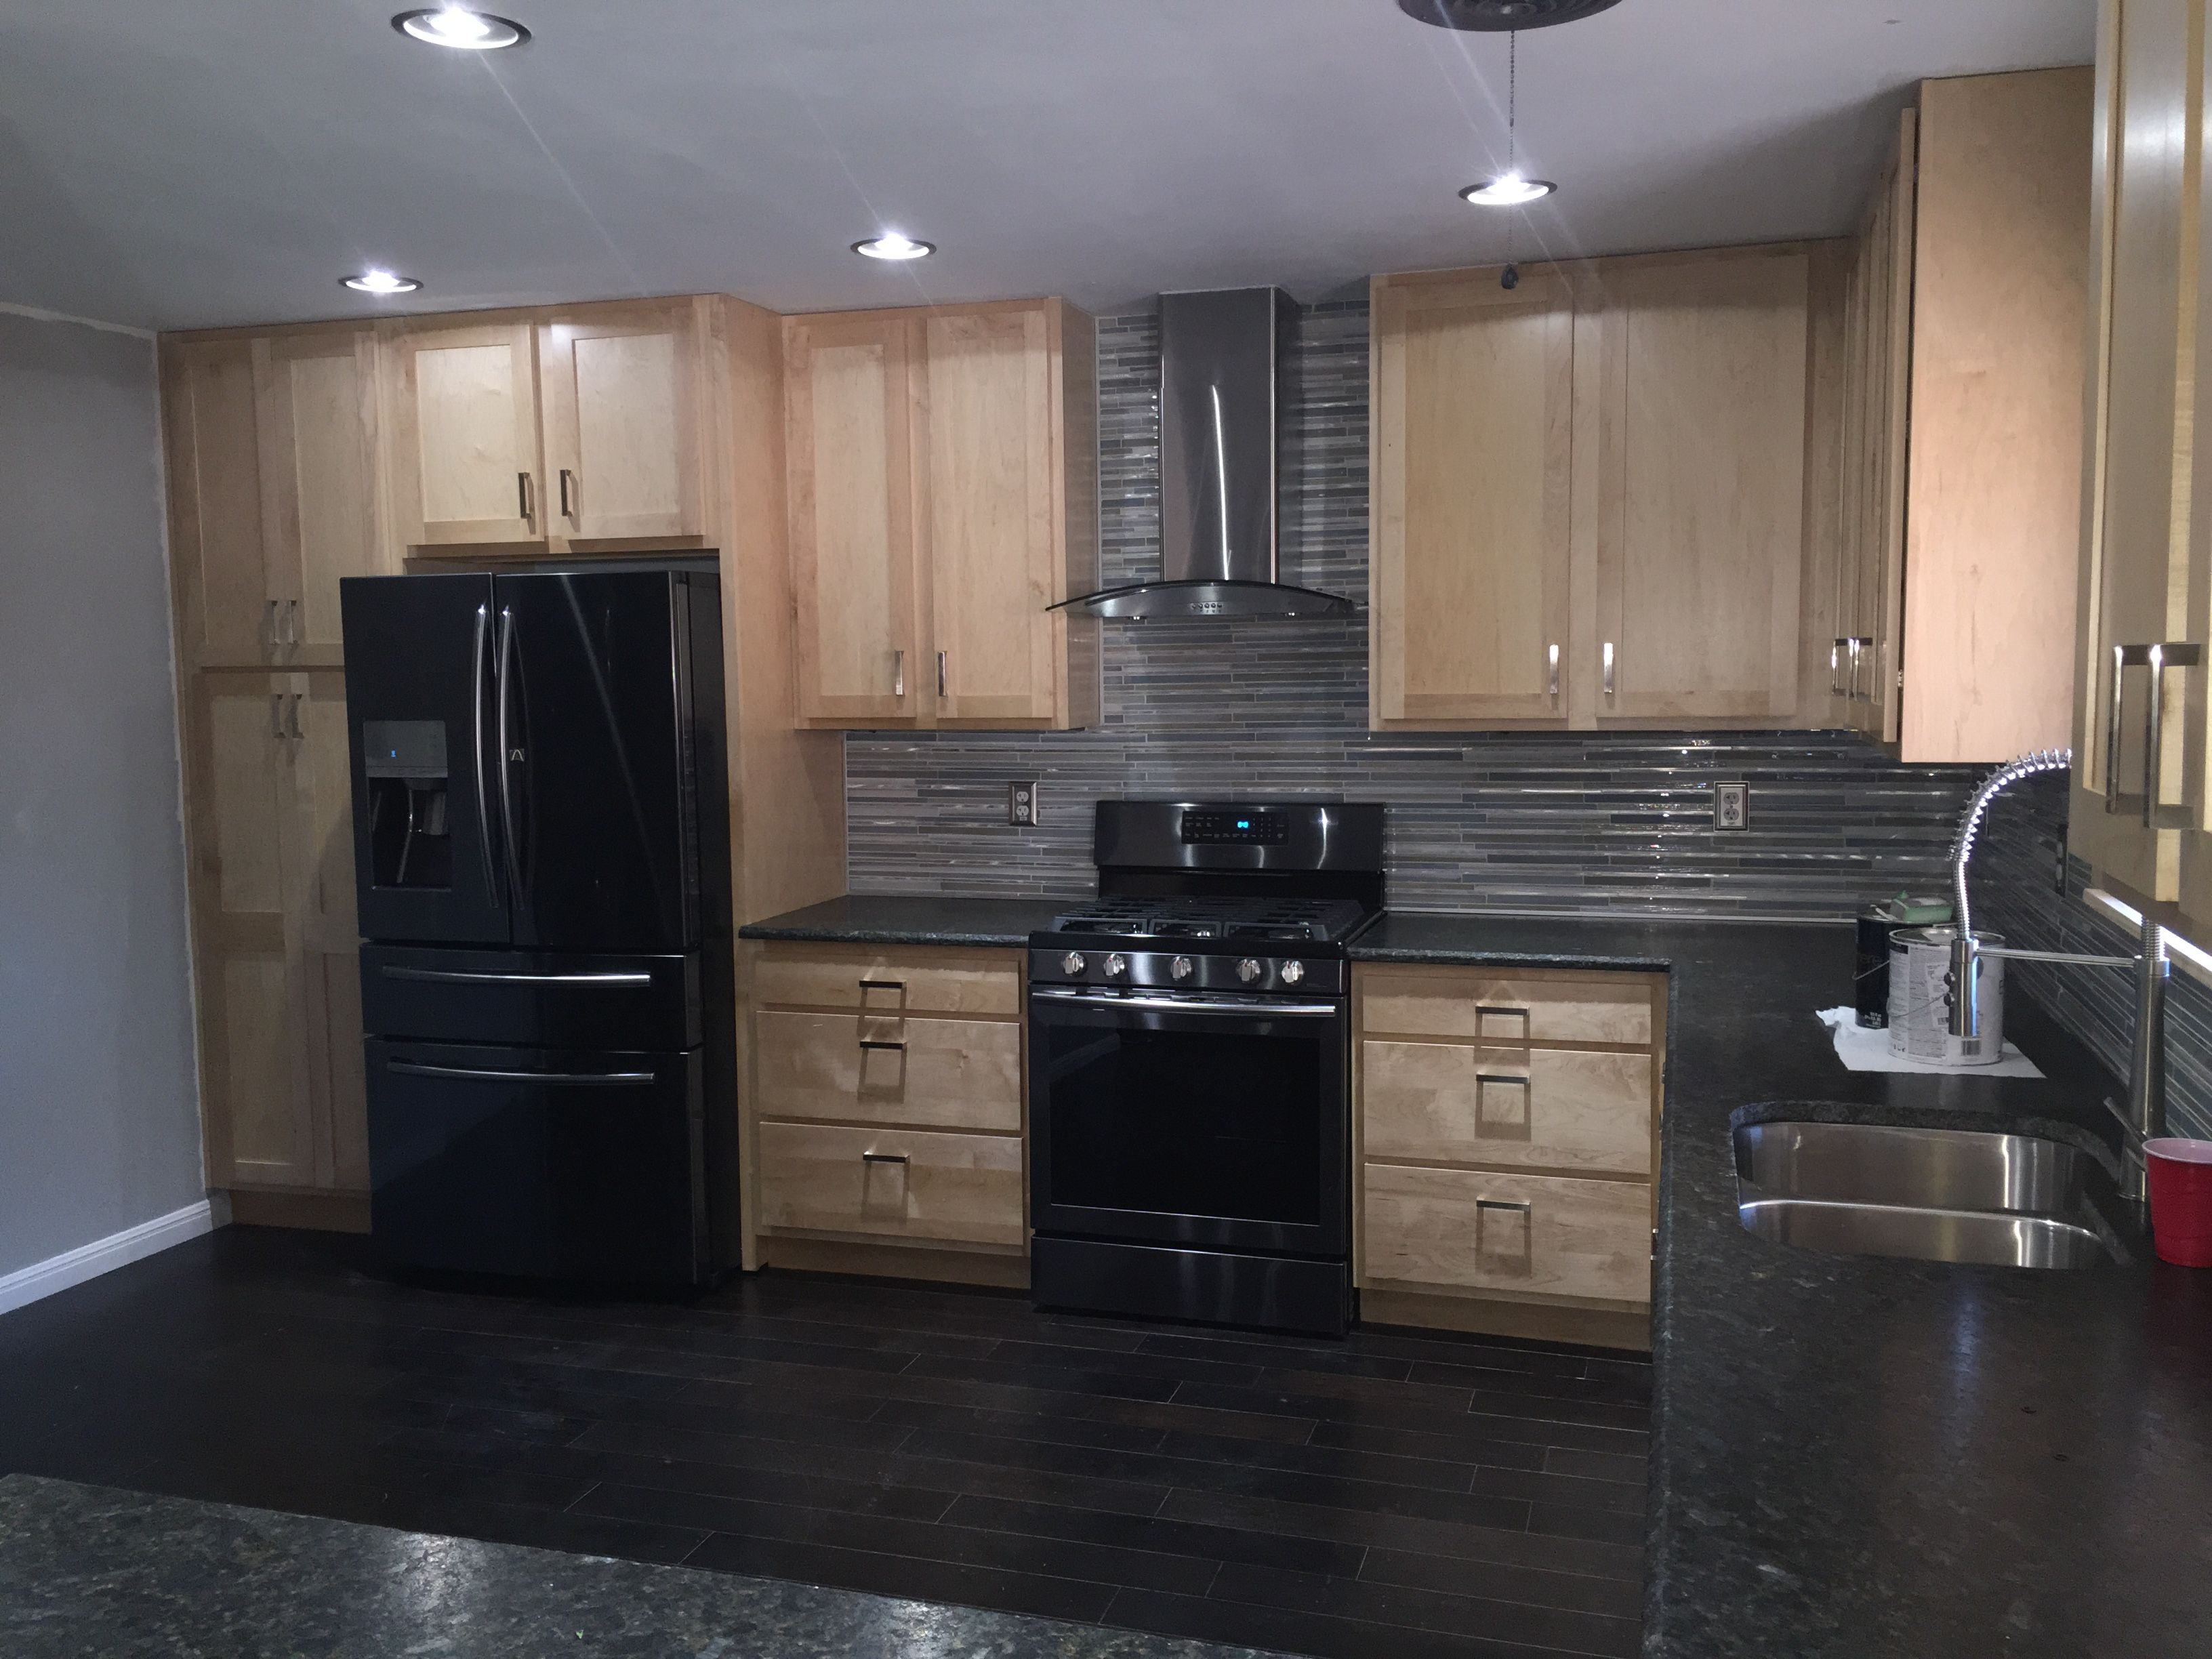 Black Stainless Steel Kitchen Hand Painted Backsplash Tiles Almost Done Refrigerator Stove Range Hood Excuse The